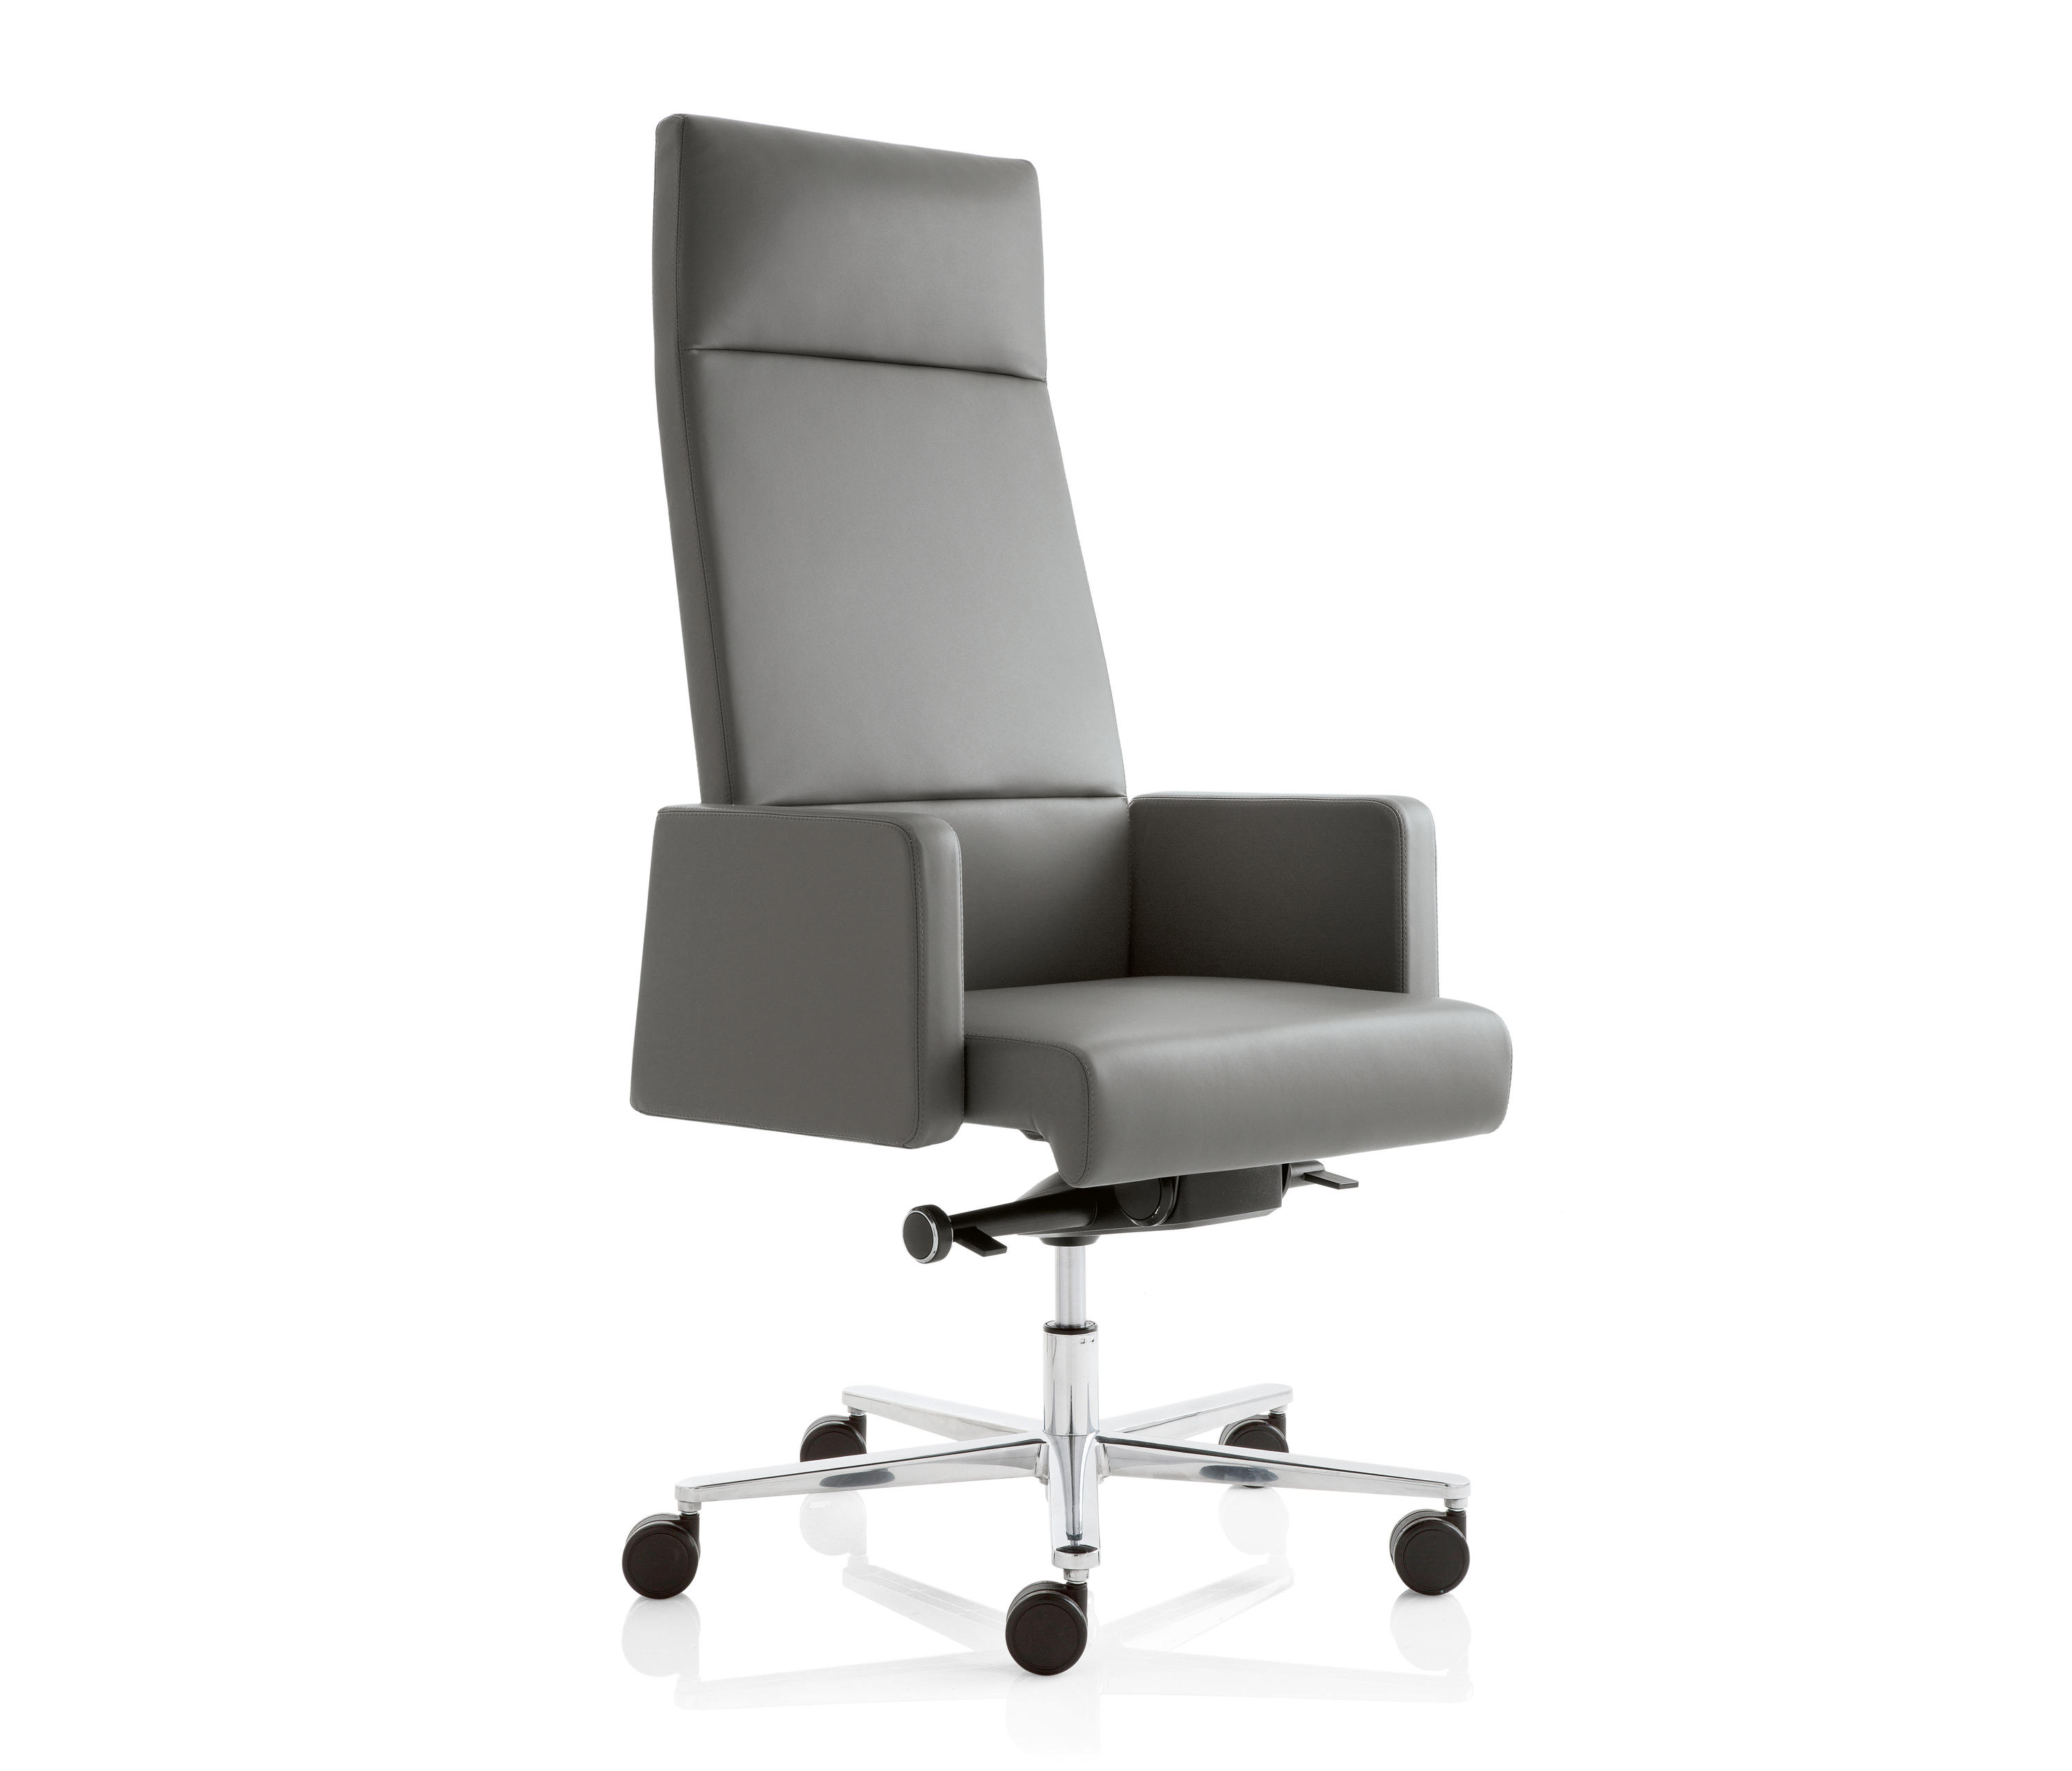 MAX Executive chairs from Emmegi